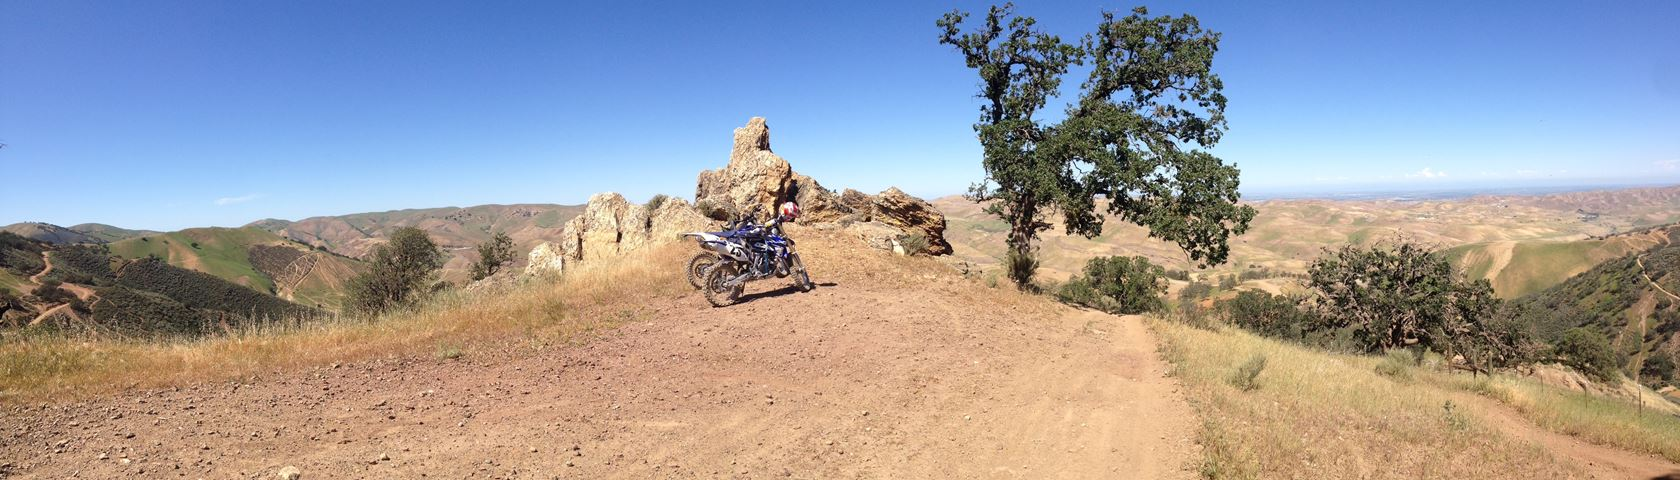 Summertime Dirtbike Riding